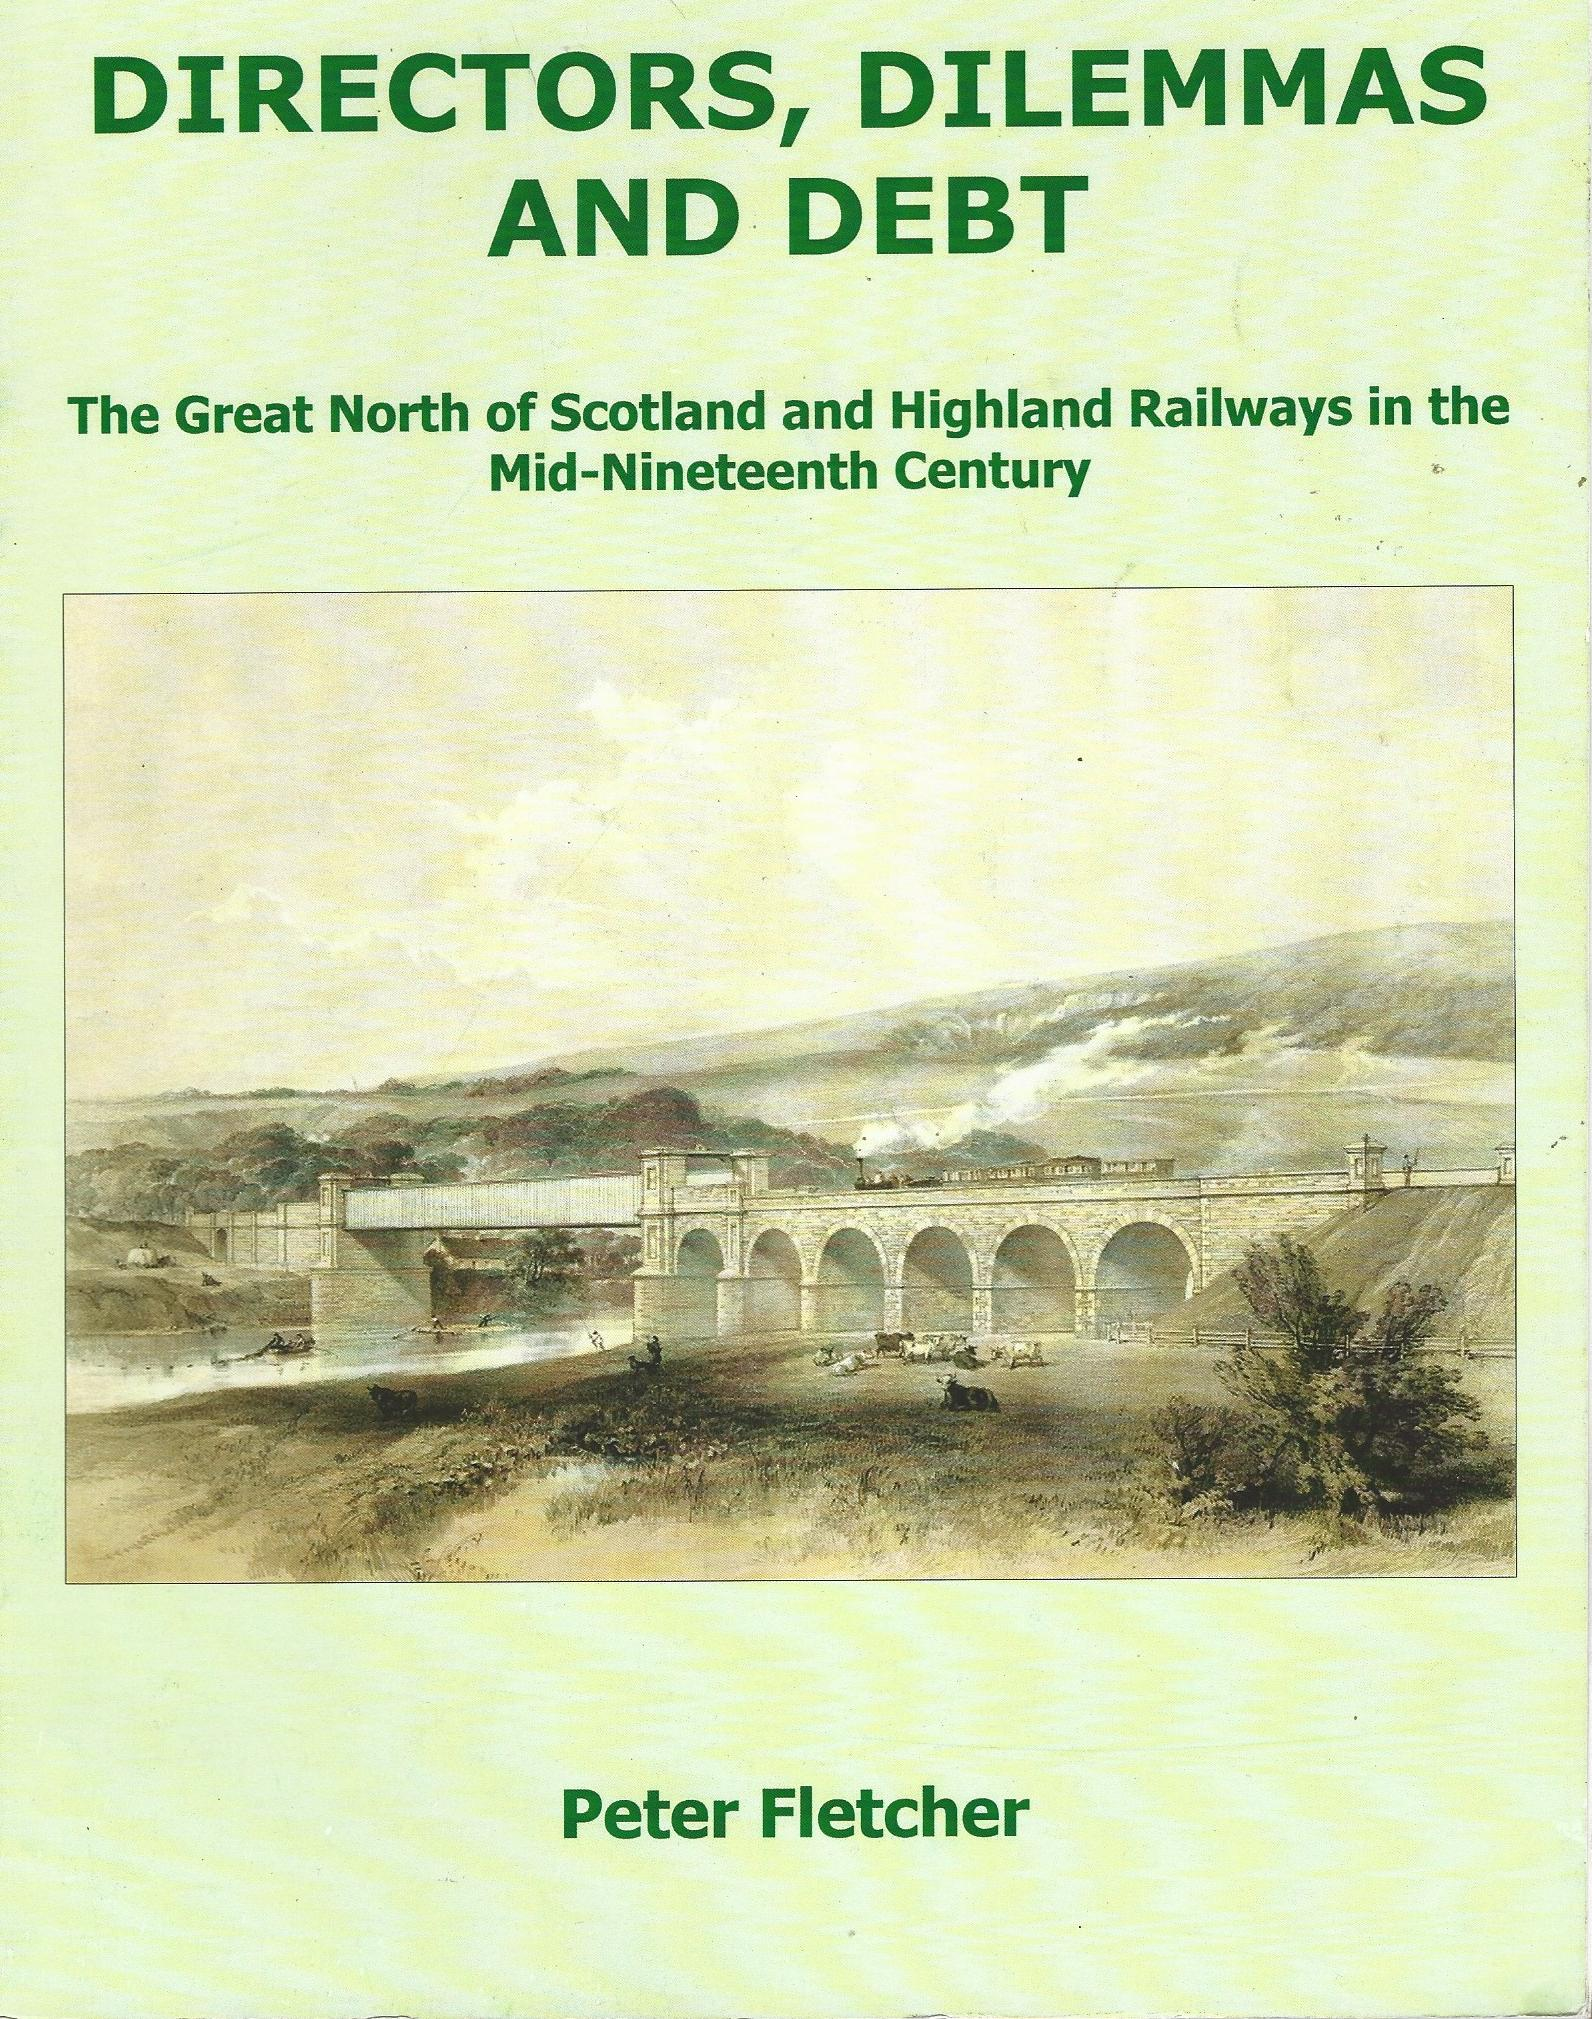 Image for Directors, Dilemmas and Debt: The Great North of Scotland and Highland Railways in the Mid-Nineteenth Century